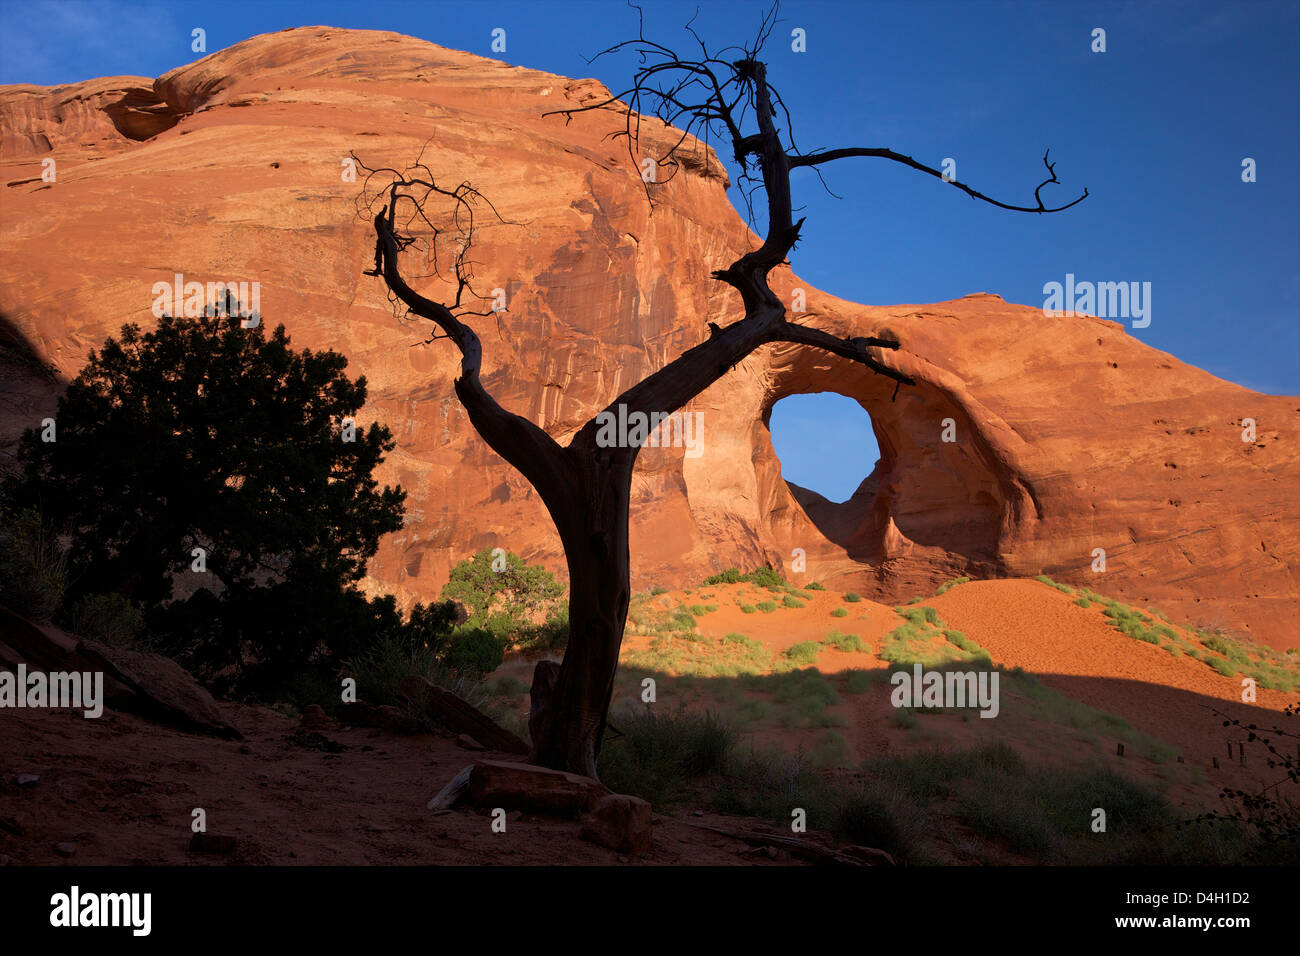 Dead juniper tree frames Ear of the Wind Arch, Monument Valley Navajo Tribal Park, Utah, USA - Stock Image